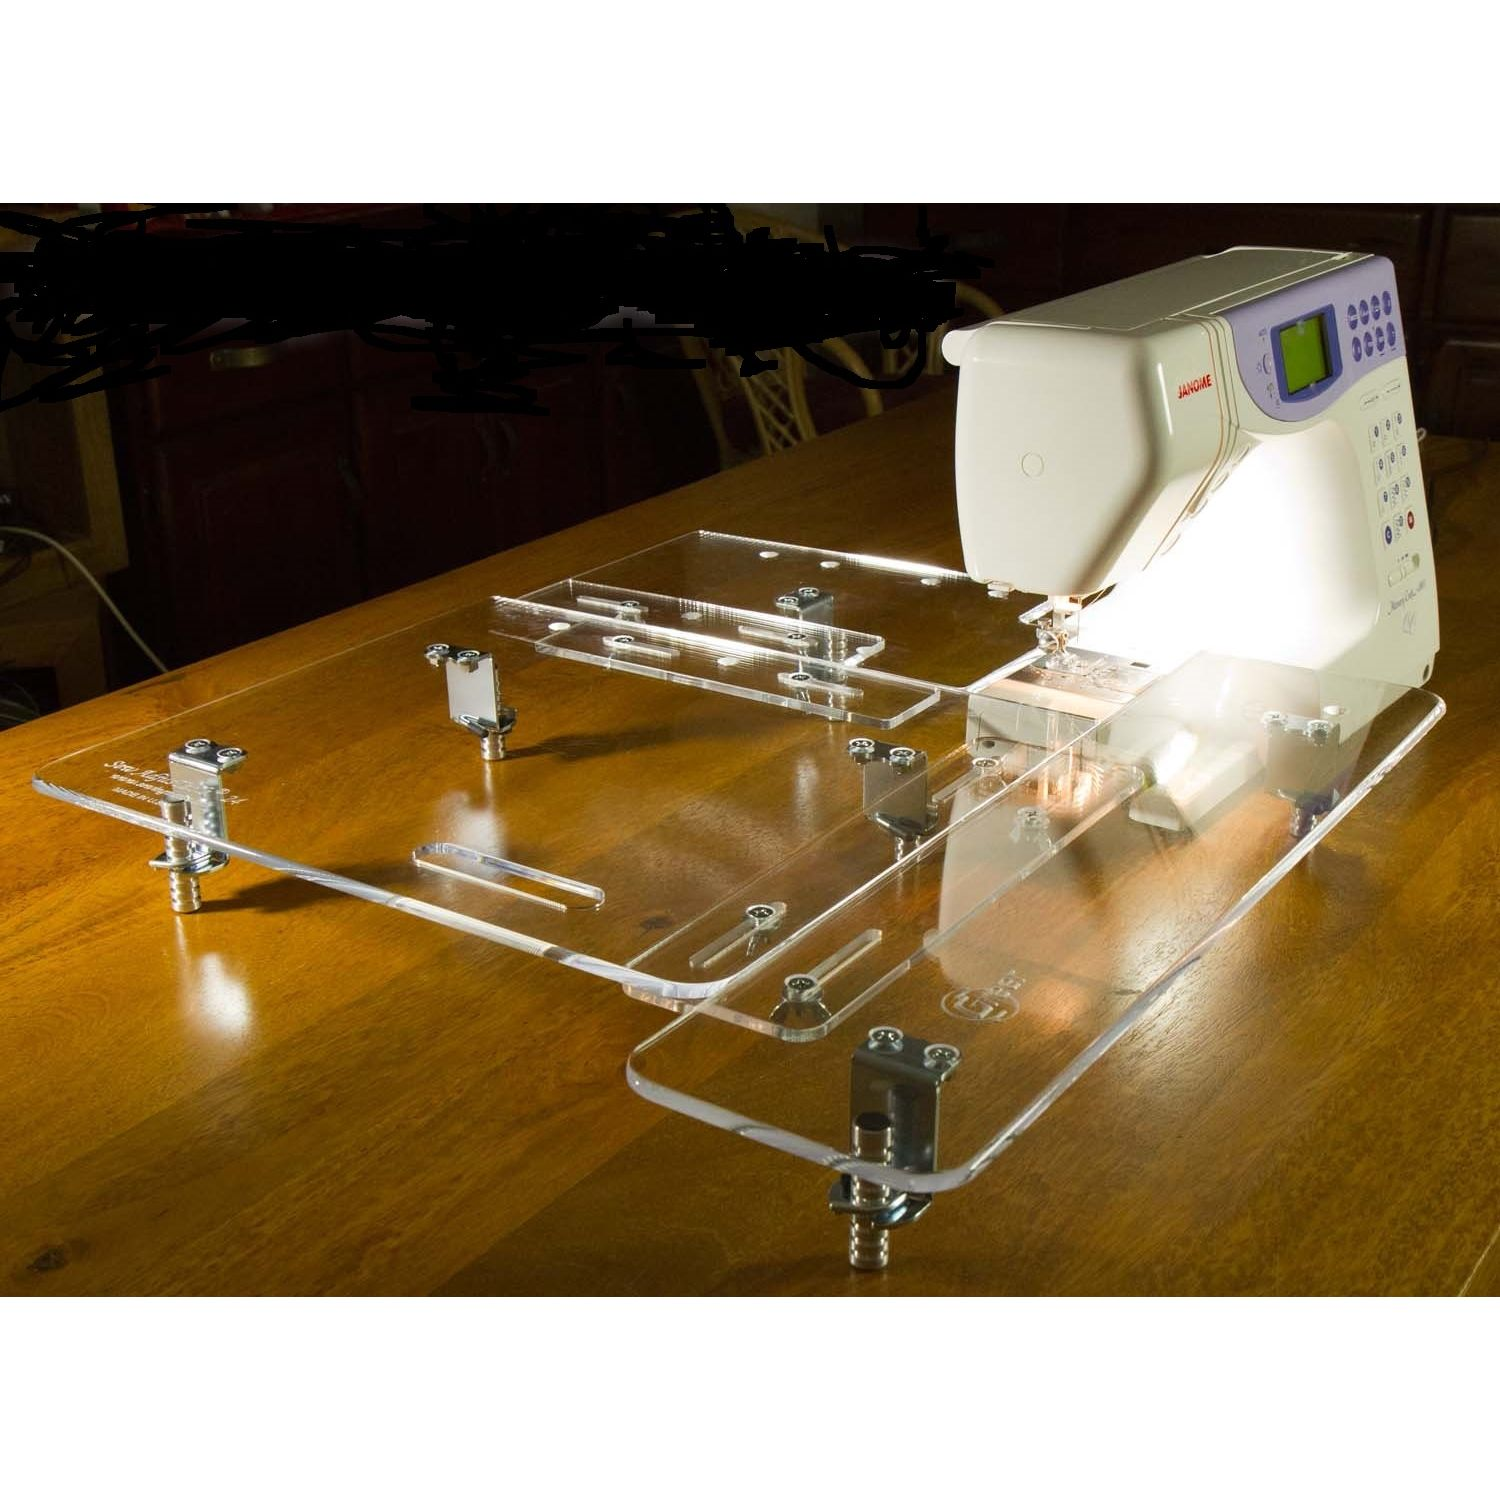 Sewing Extension Extension Table Extension Large Sewing Sewing Table Large Table Large Large Y7bgyvm6If